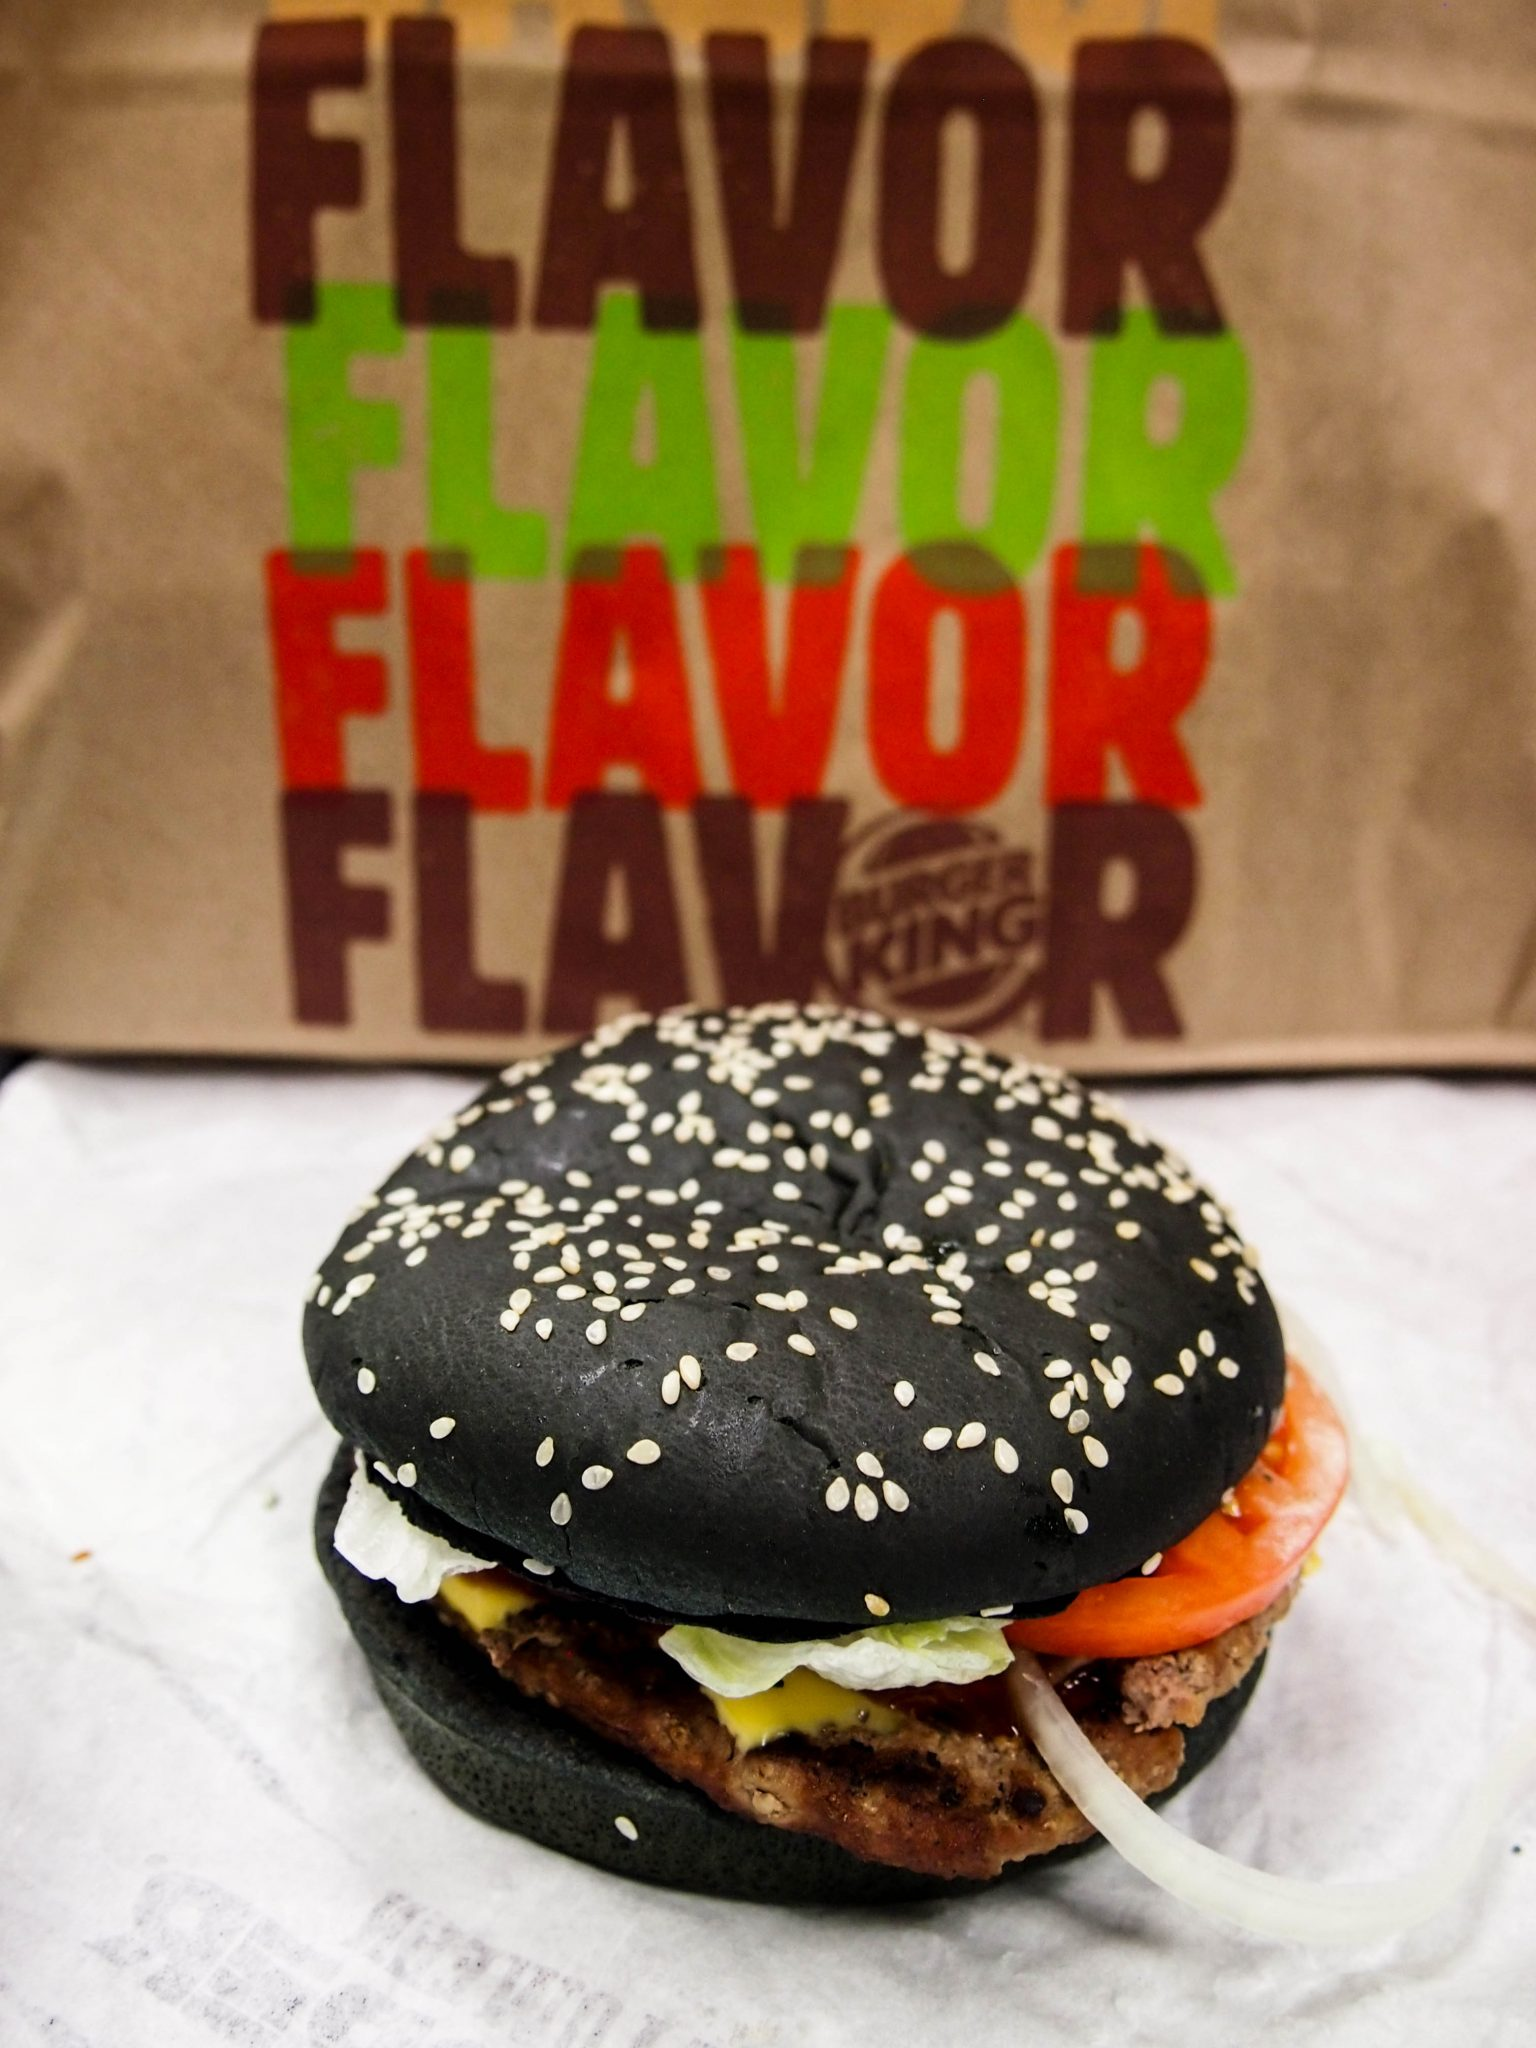 Halloween Whopper not so spooky, dry | The Bison